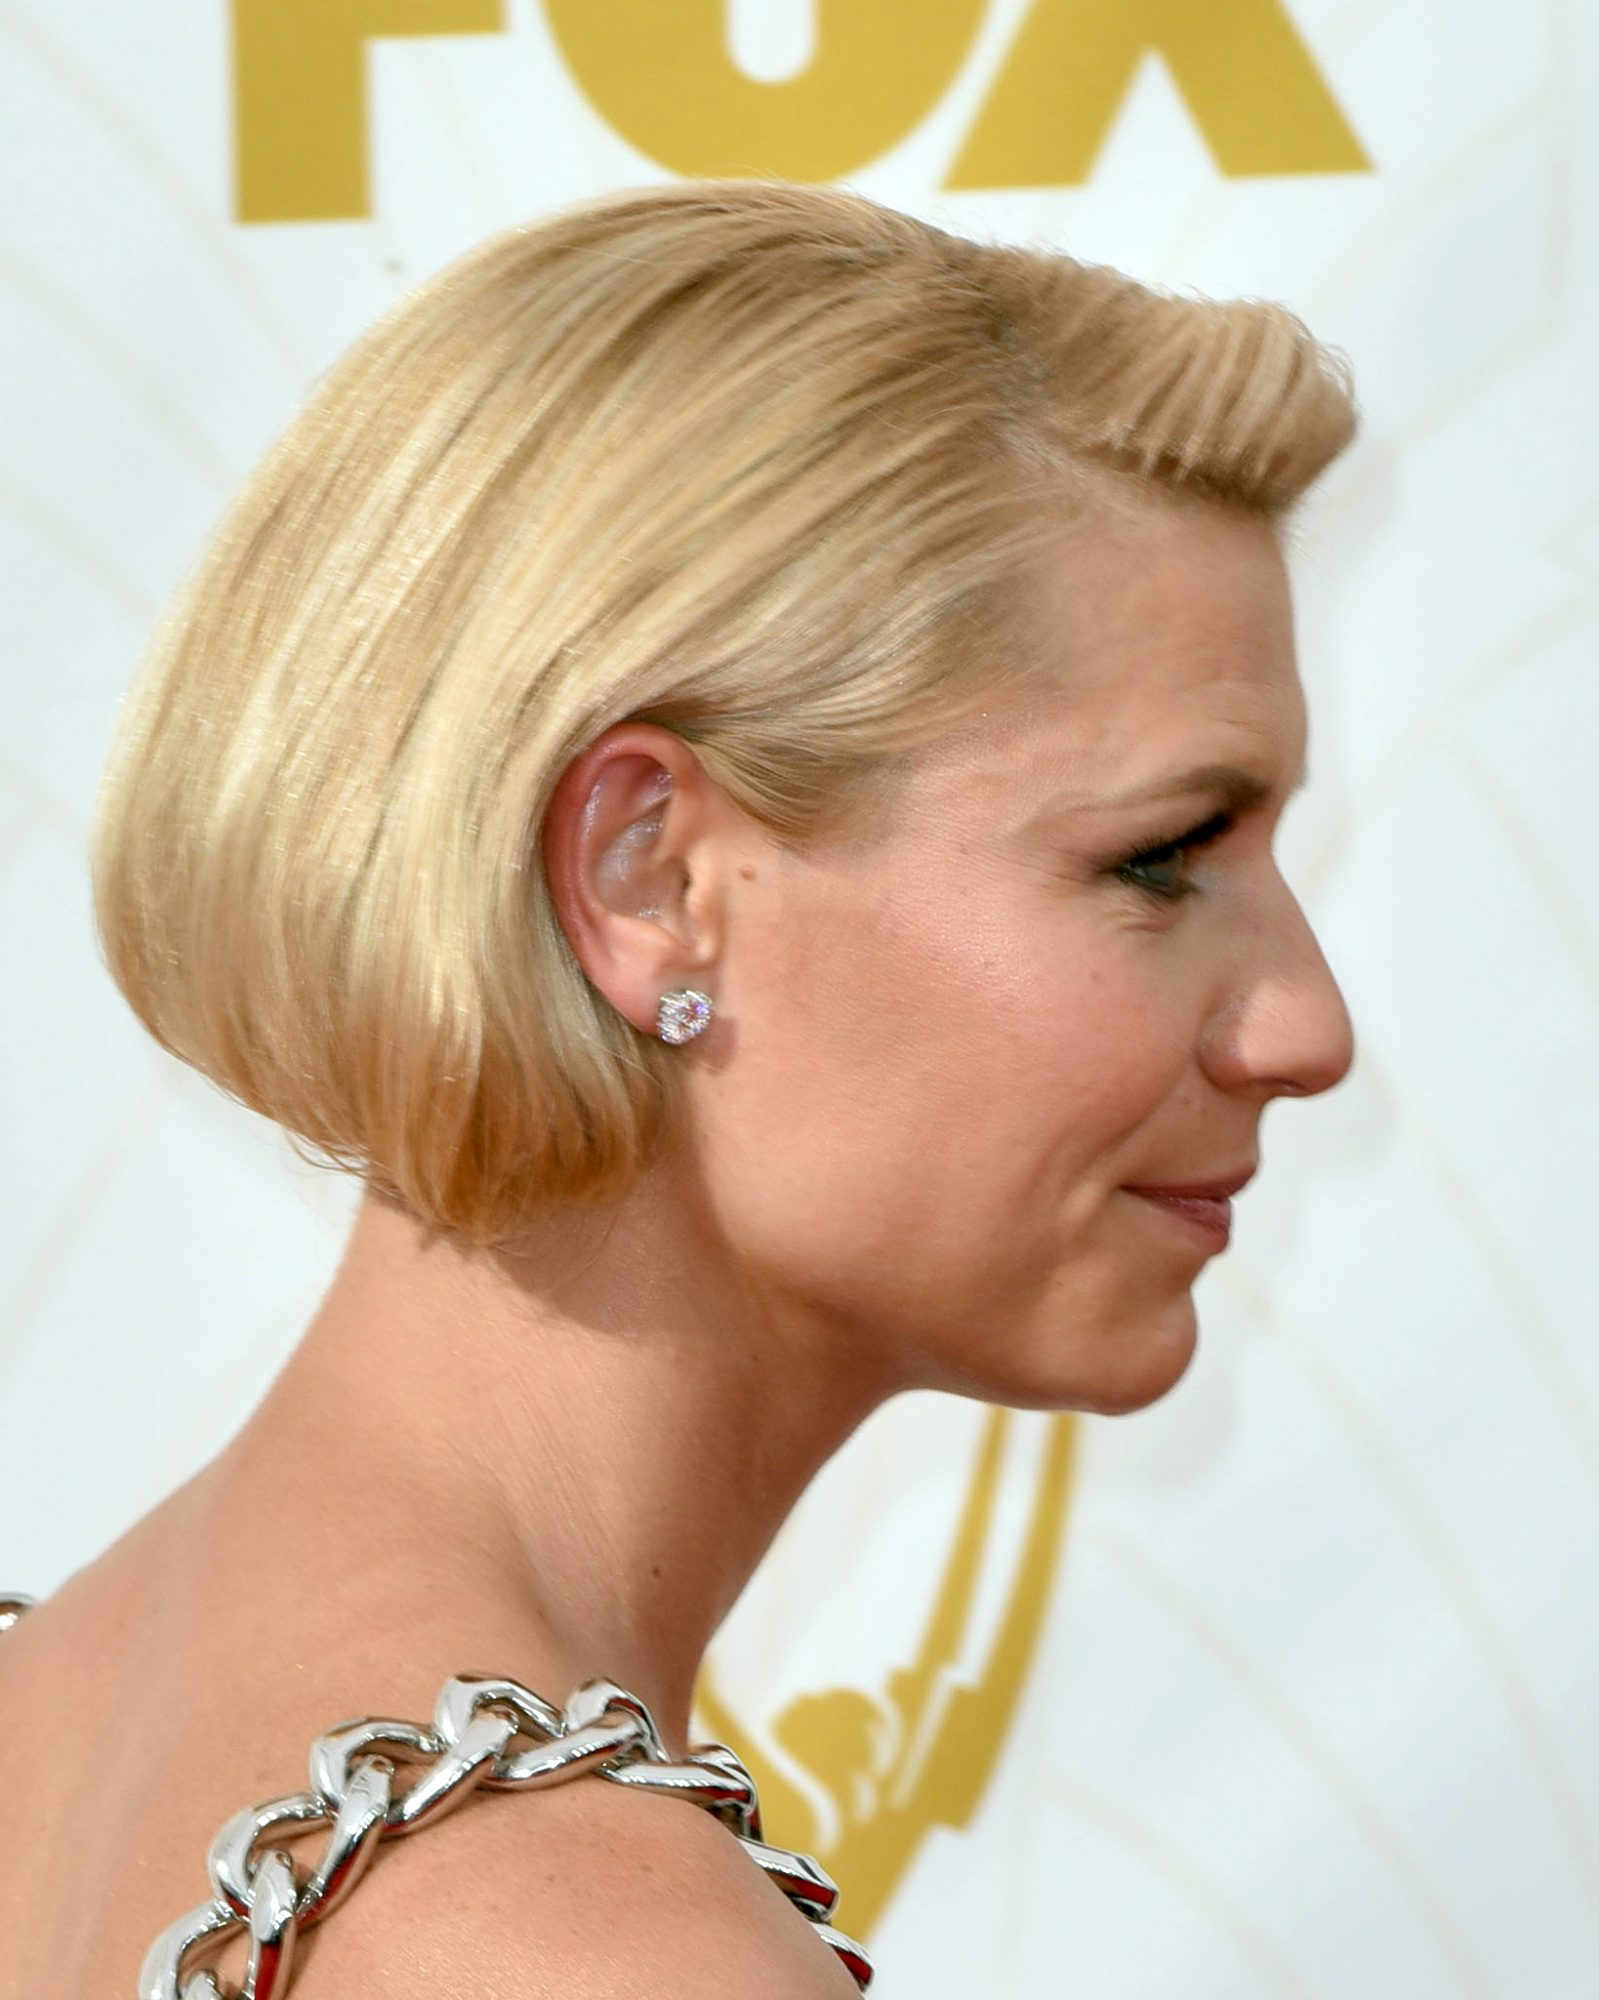 celebrity-wedding-hair-claire-danes-emmys-gettyimages-489446650-0915.jpg